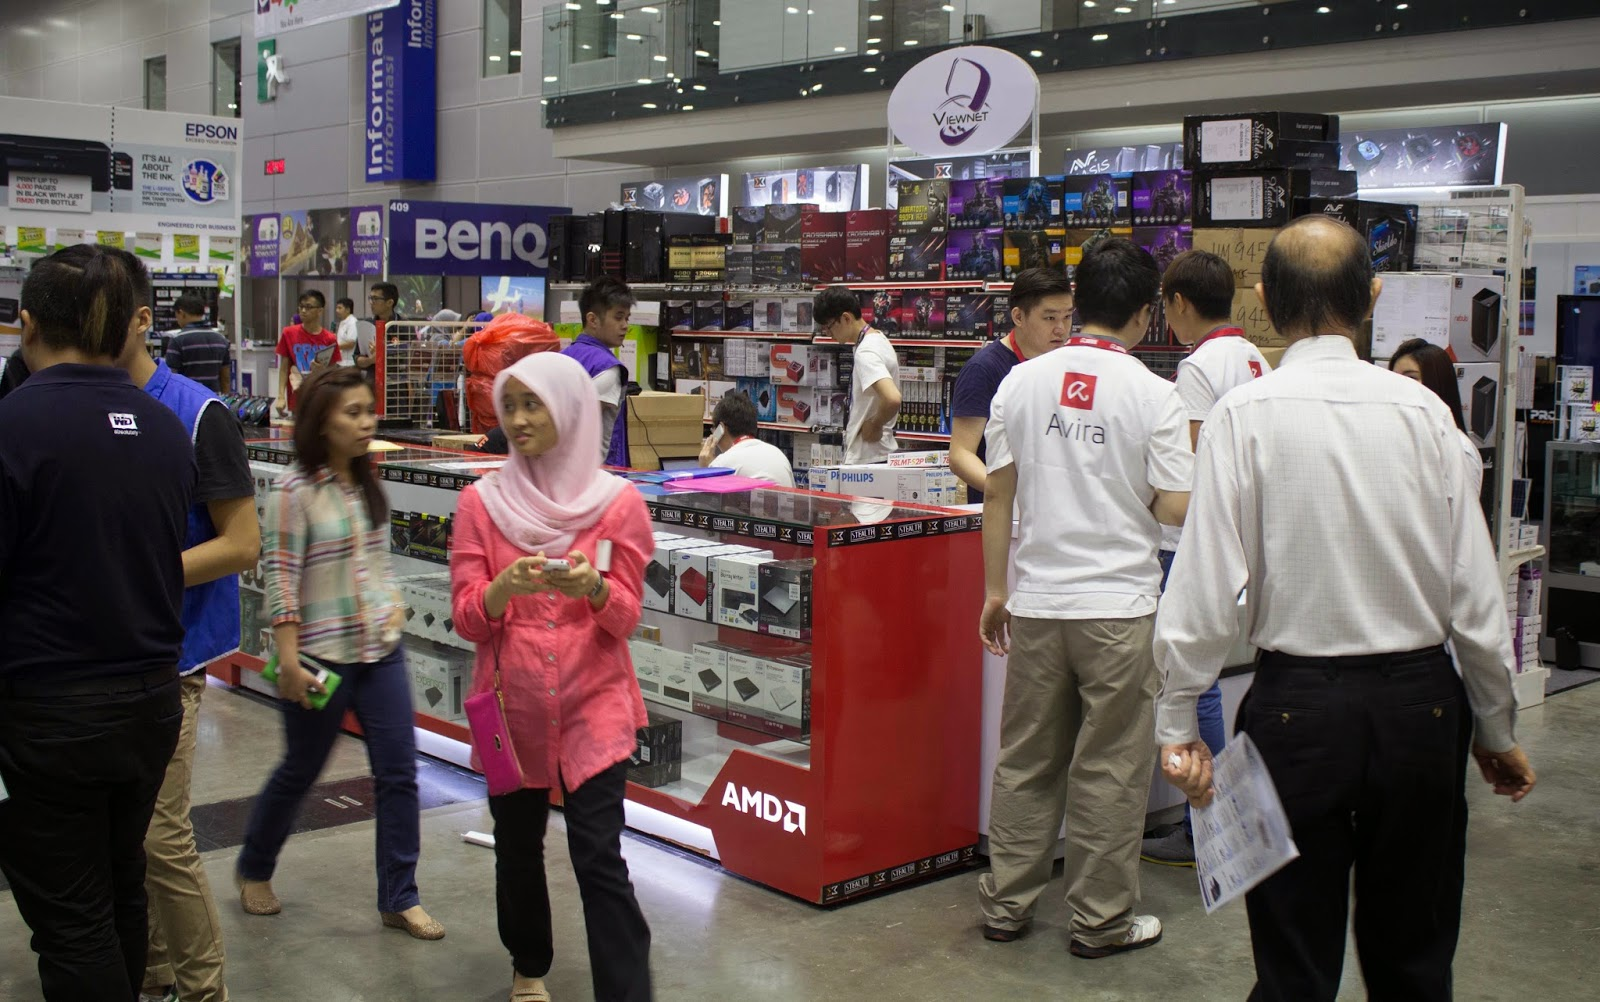 Coverage of PIKOM PC Fair 2014 @ Kuala Lumpur Convention Center 372